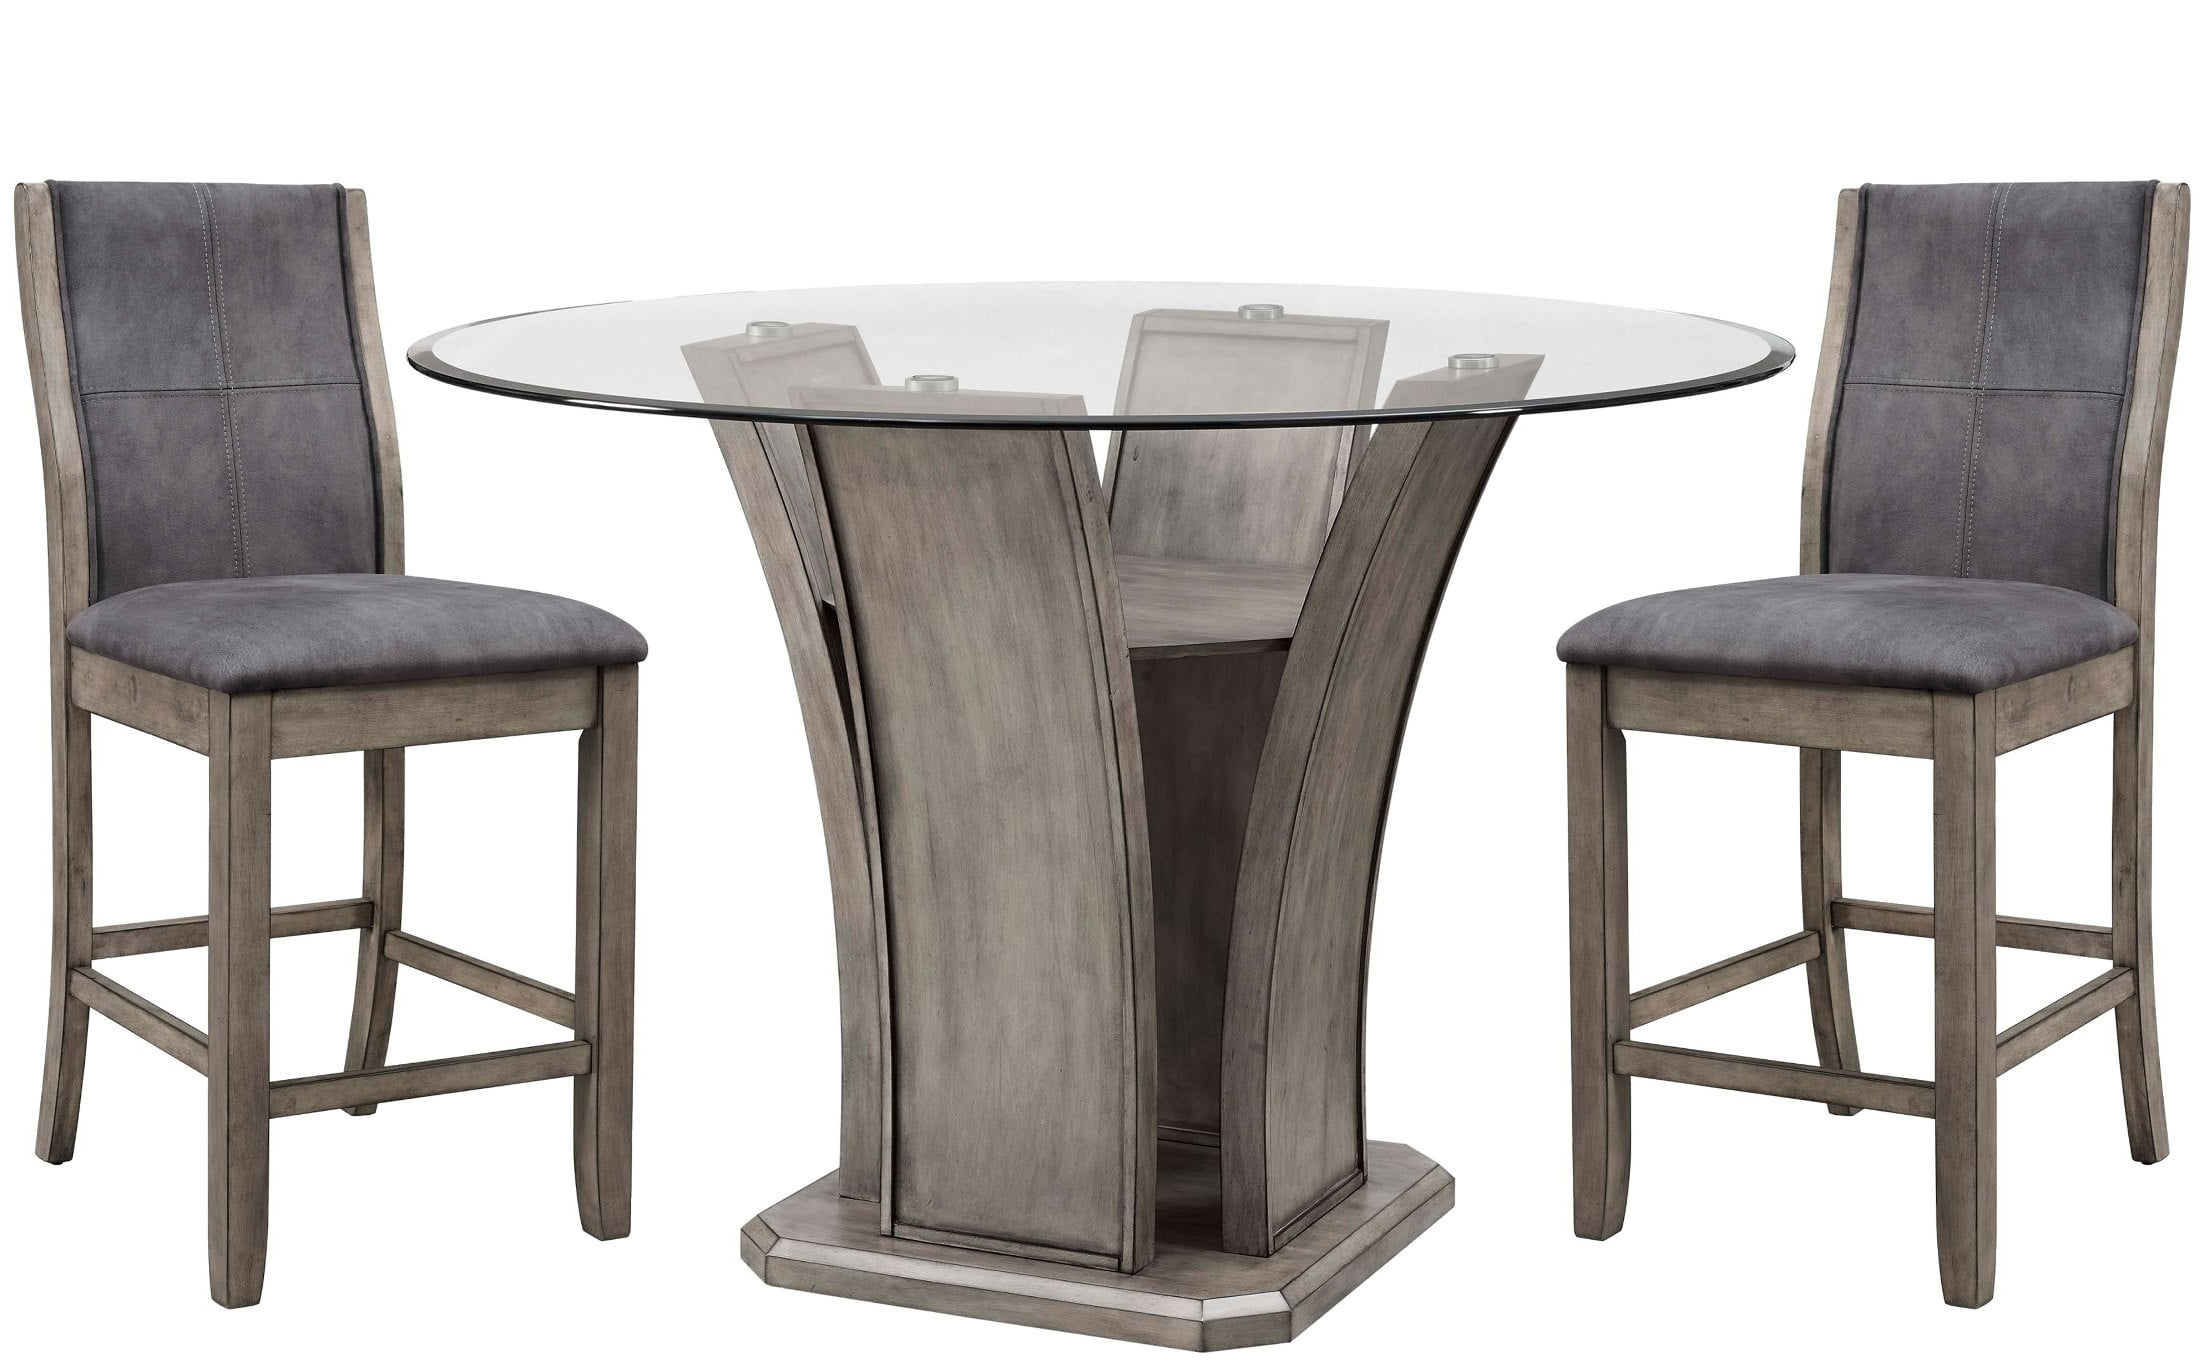 Dylan Gray Wash Round Counter Height Dining Room Set With Regard To Widely Used Kinsler 3 Piece Bistro Sets (View 5 of 20)